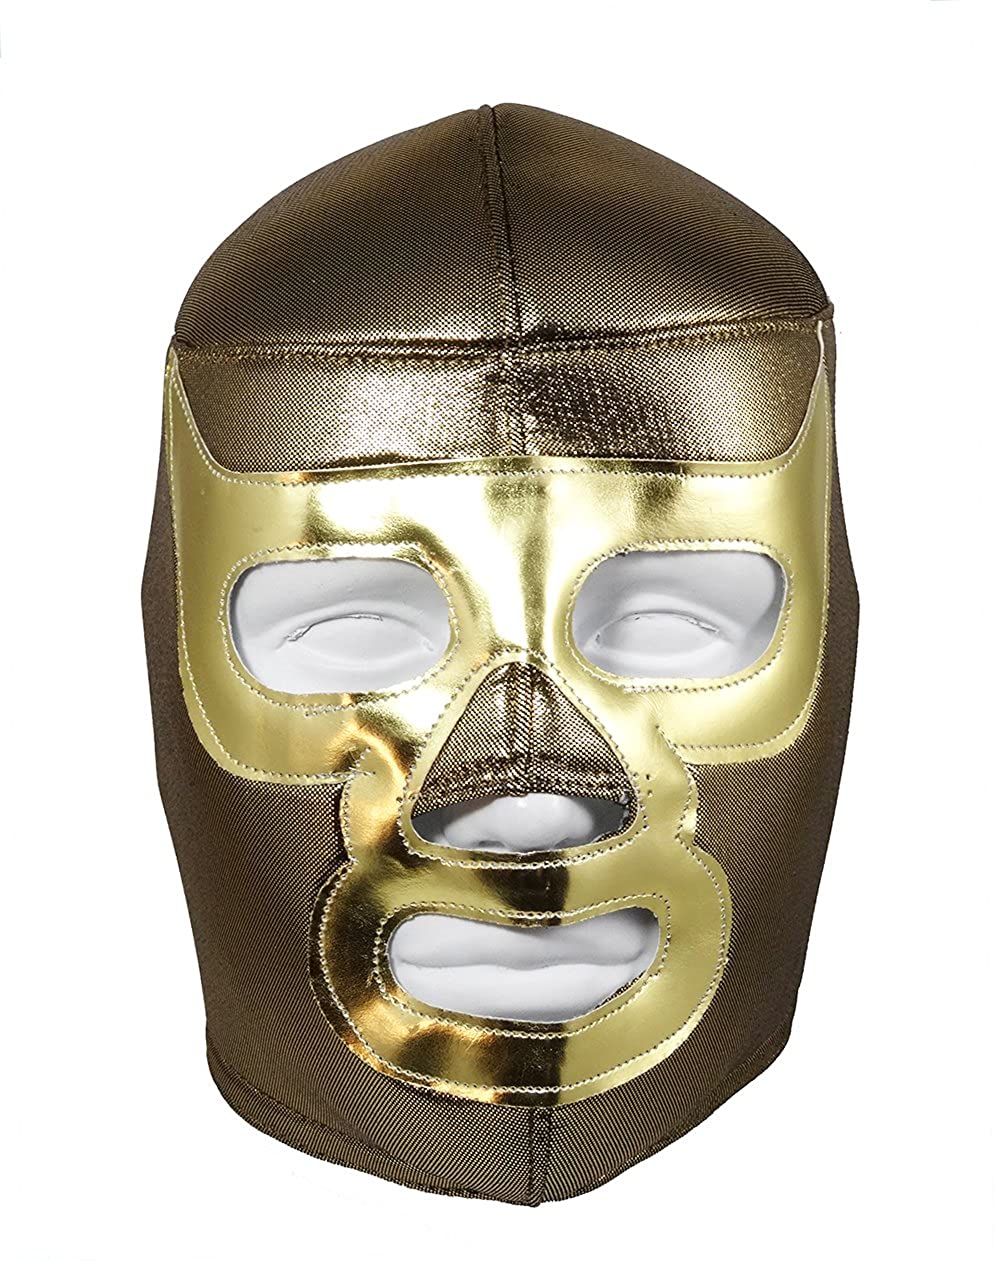 Amazon.com: RAMSES Adult Lucha Libre Wrestling Mask (pro-fit) Costume Wear - Gold: Clothing